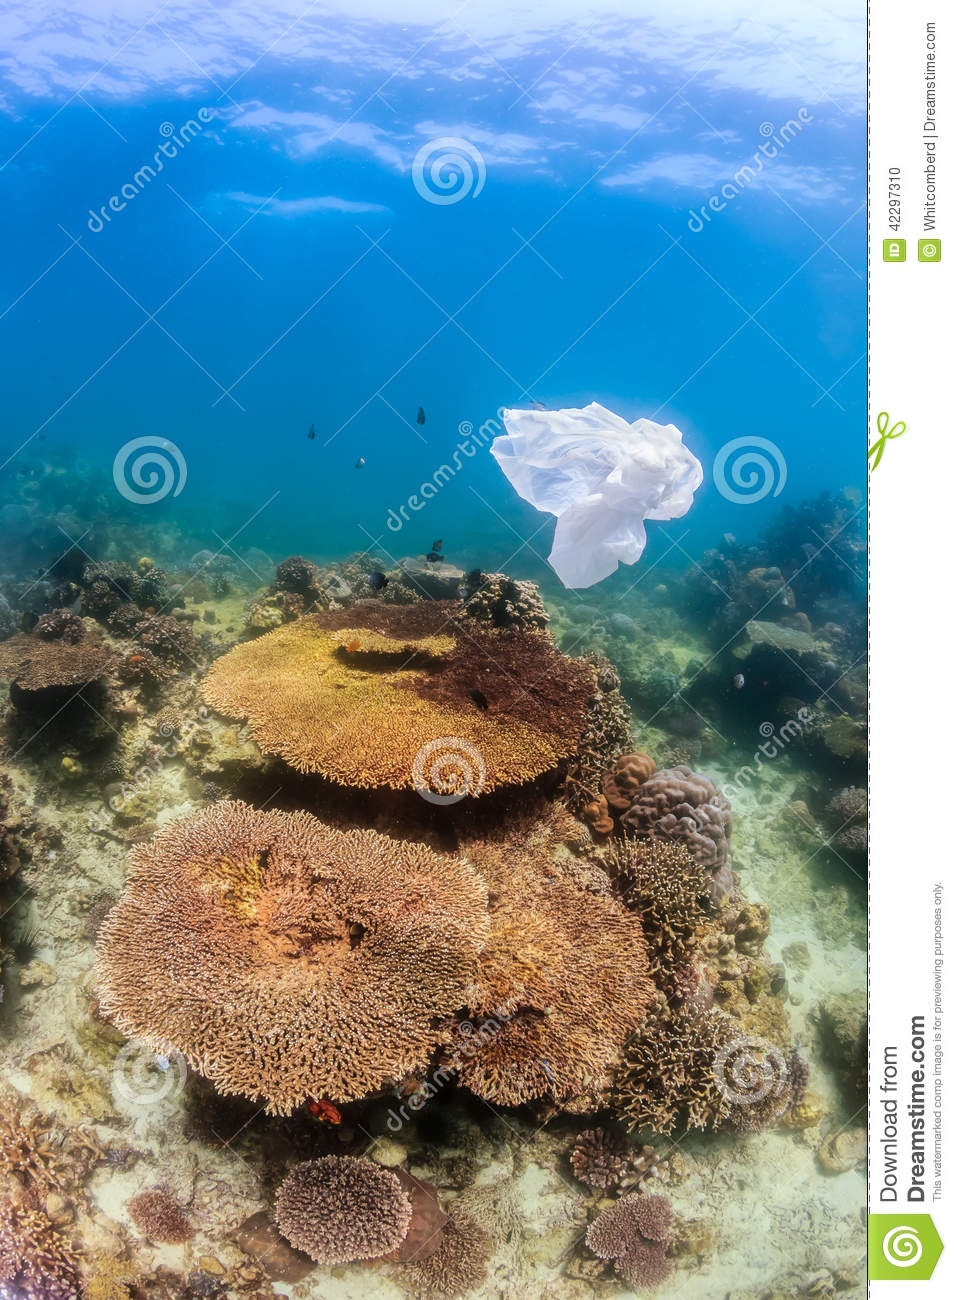 Dumped plastic bag floating next to a coral reef